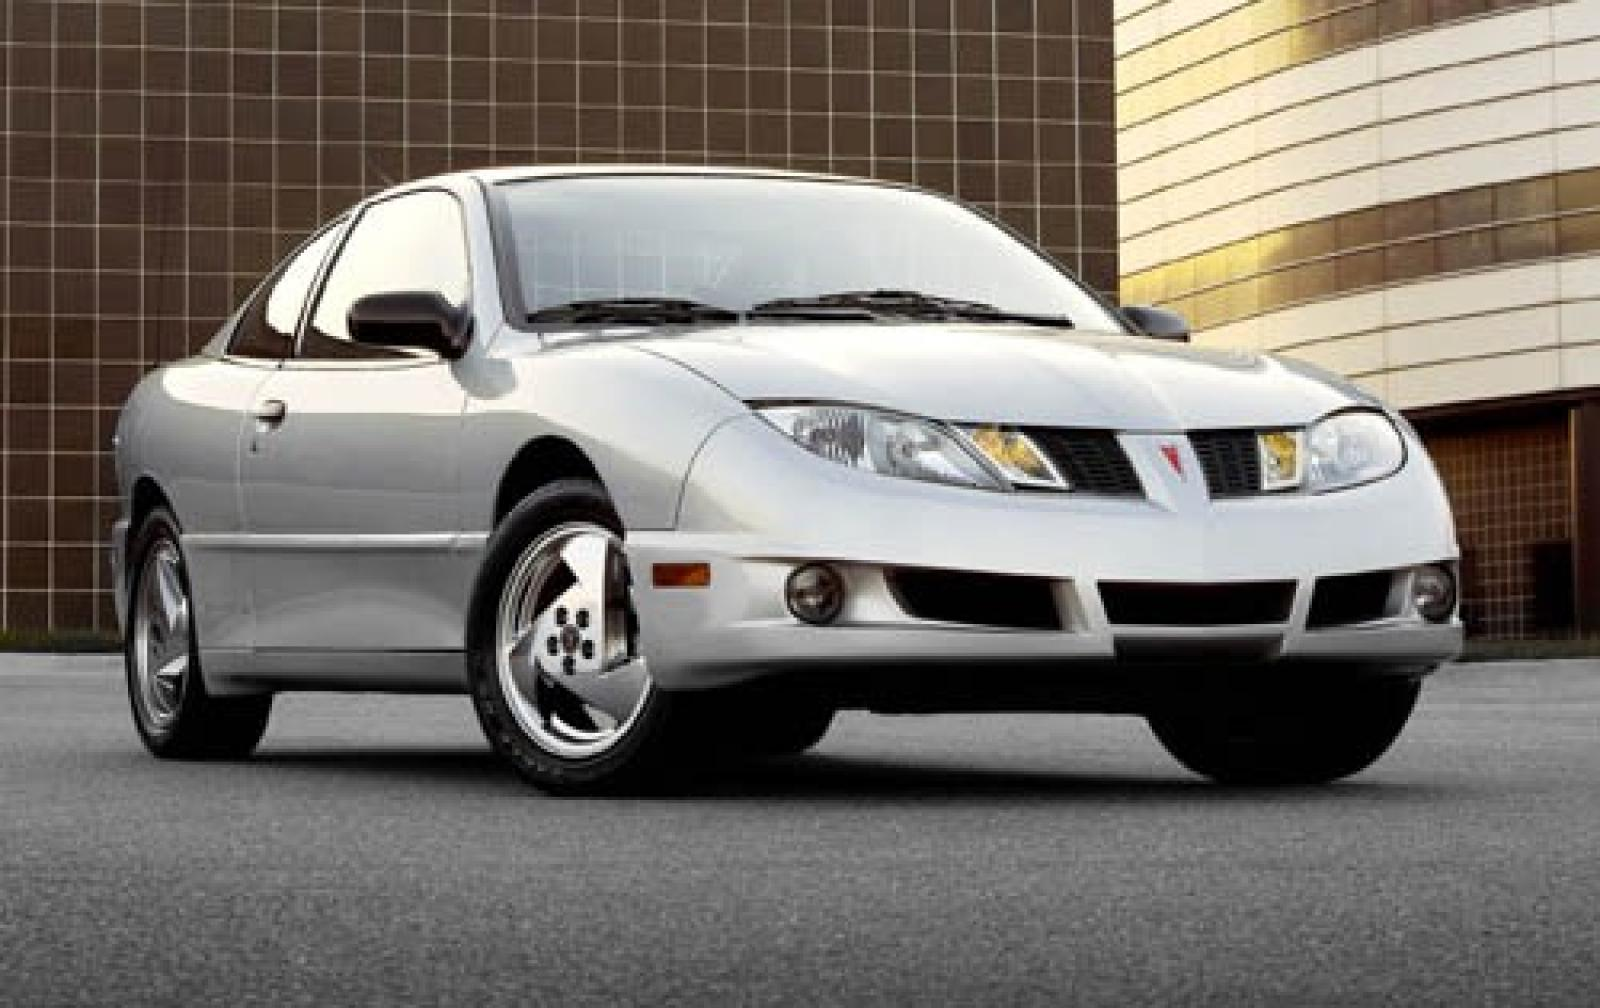 hight resolution of 800 1024 1280 1600 origin 2005 pontiac sunfire